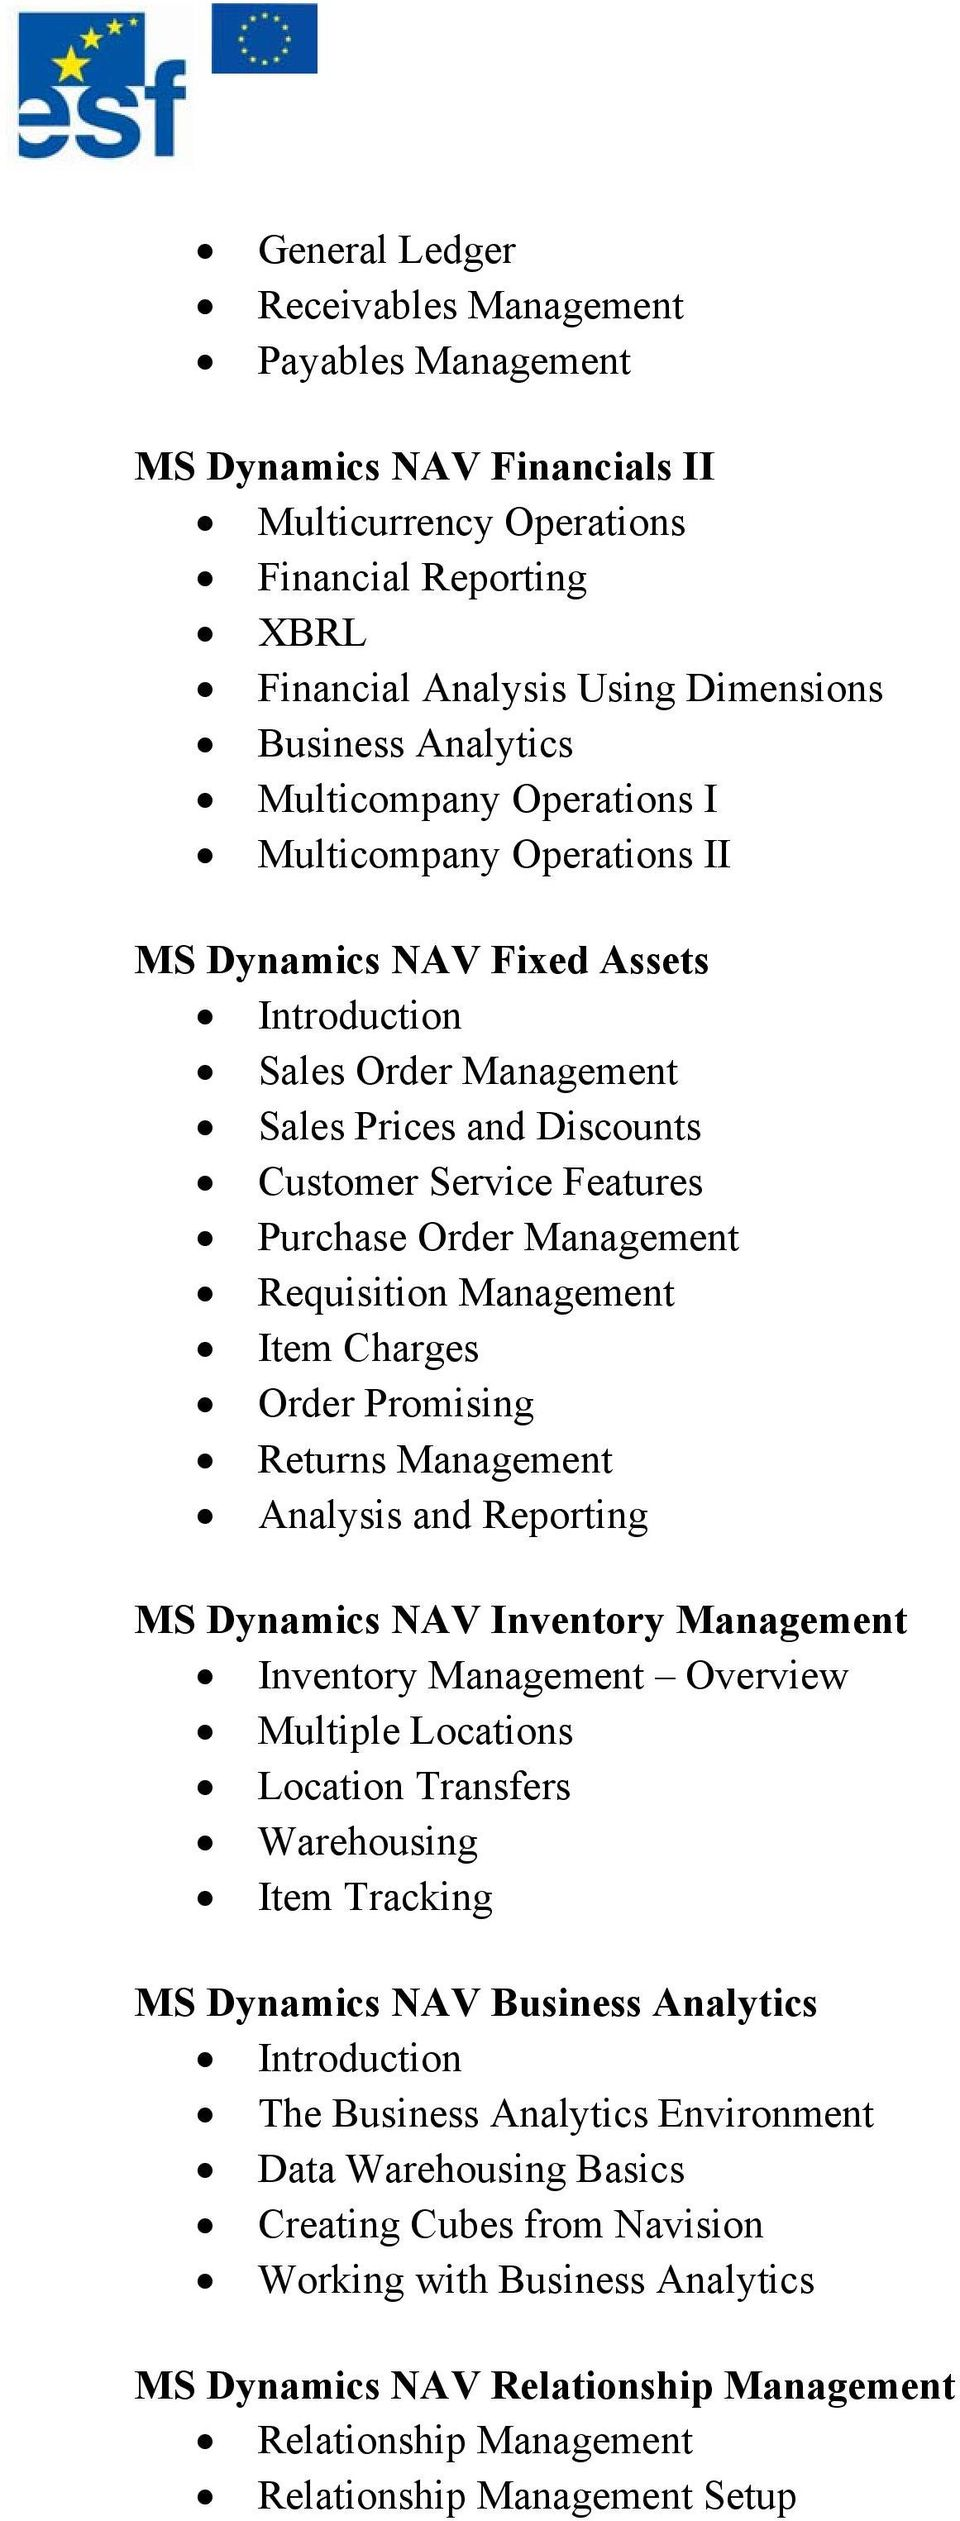 Requisition Management Item Charges Order Promising Returns Management Analysis and Reporting MS Dynamics NAV Inventory Management Inventory Management Overview Multiple Locations Location Transfers